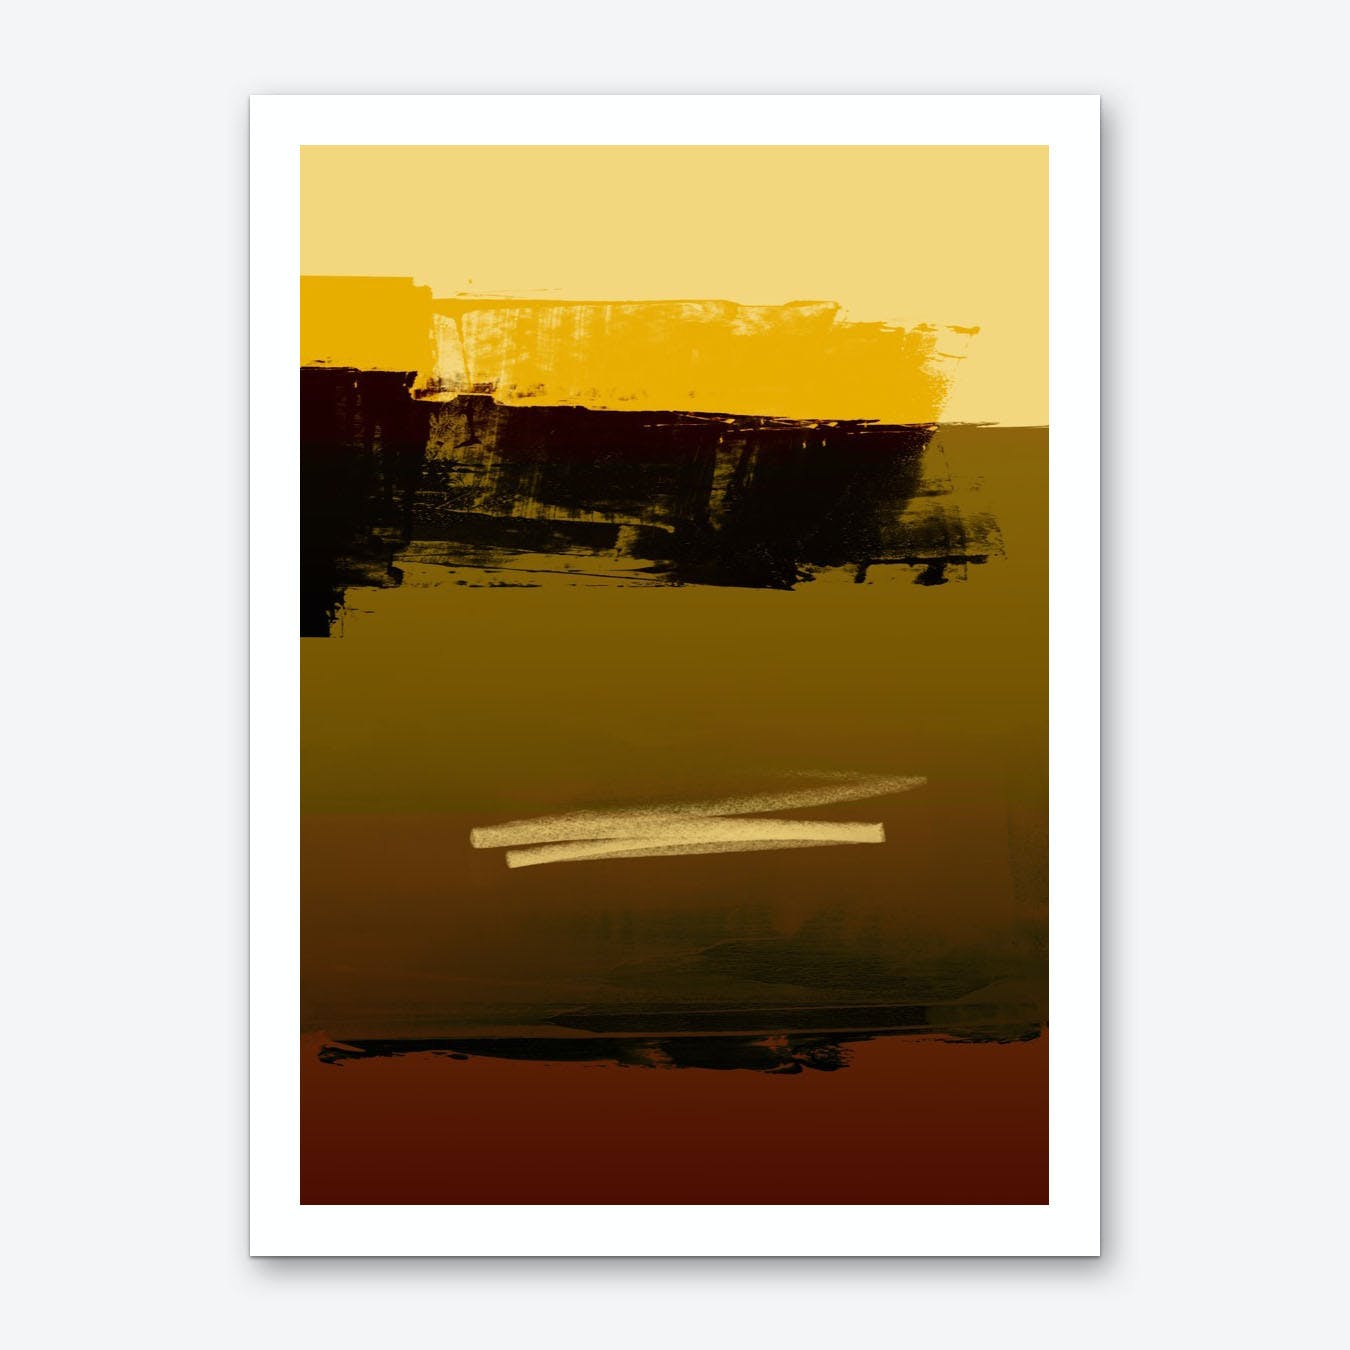 Olive Brown Yellow Expressive Abstract Art Print